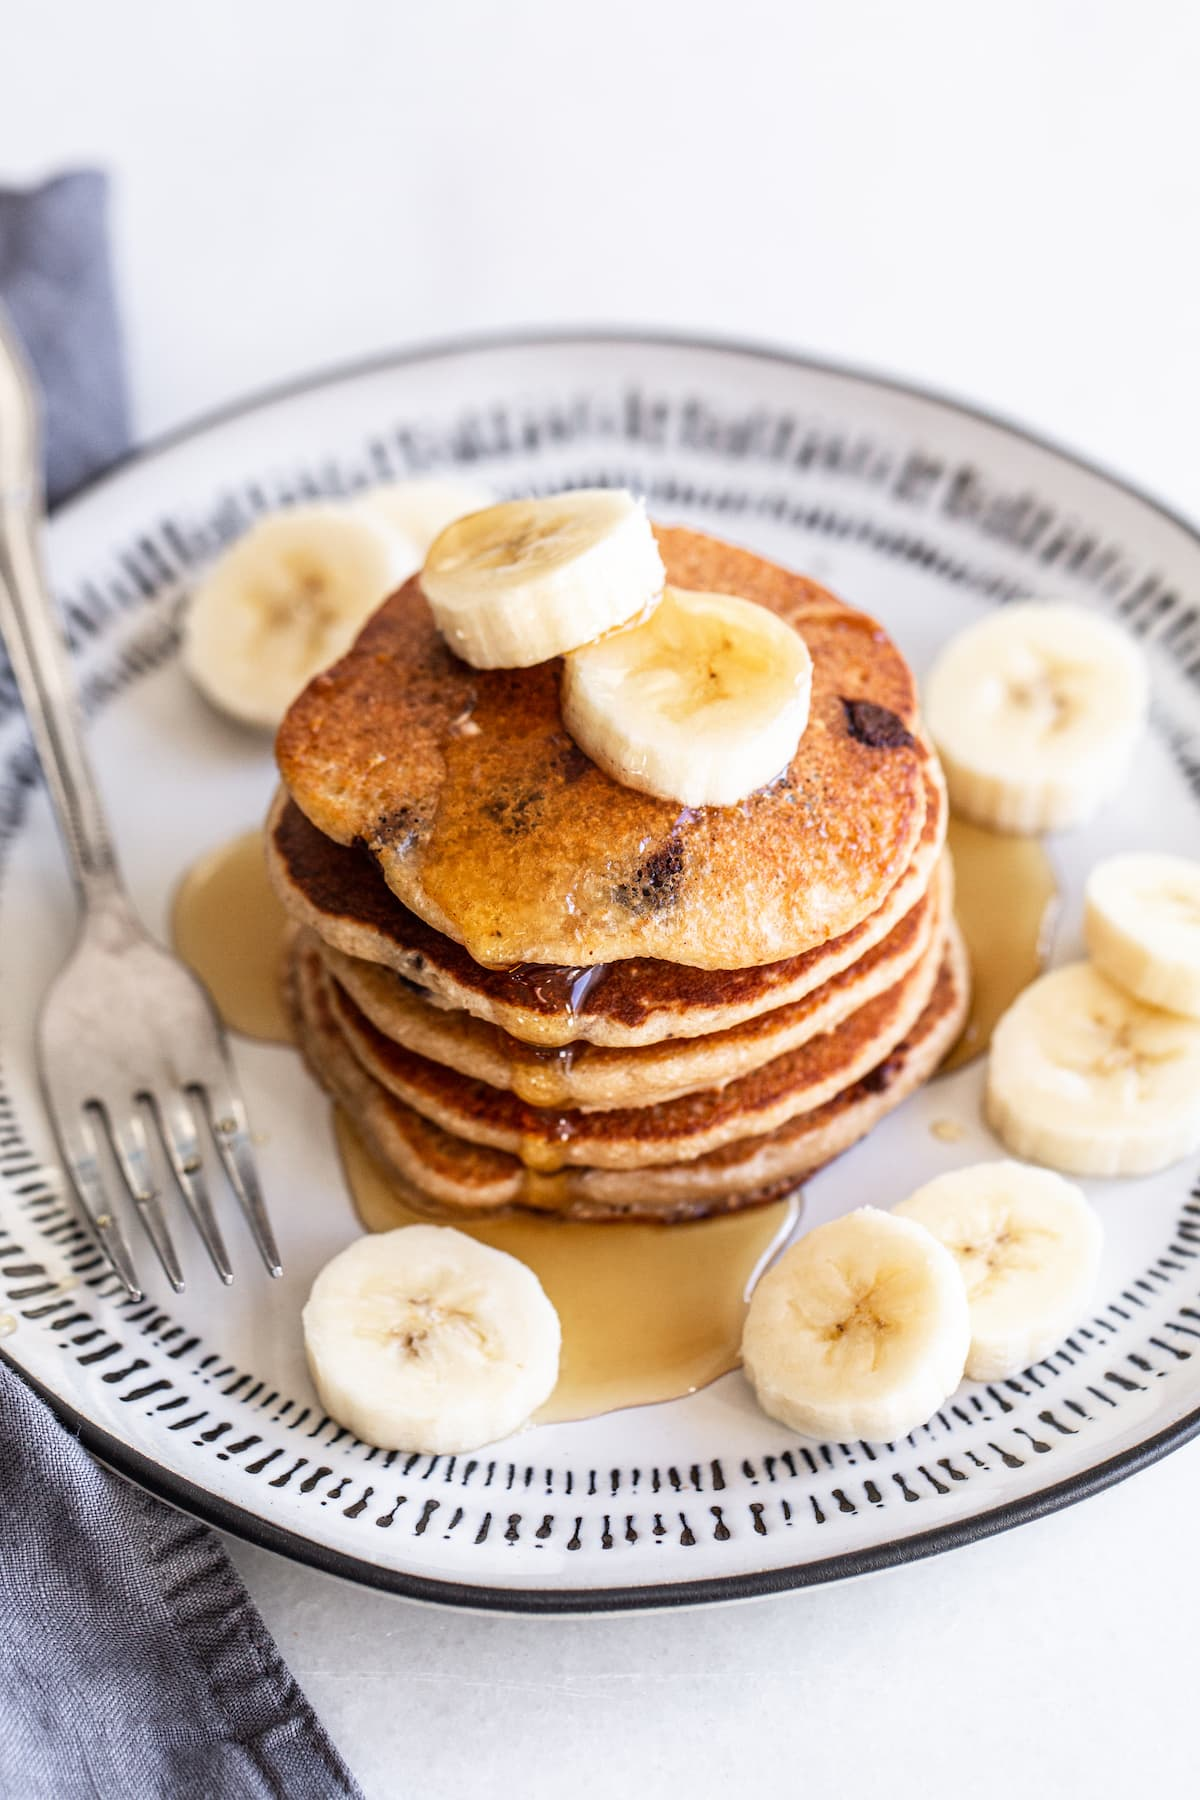 Stack of banana chocolate chip pancakes topped with banana slices and maple syrup.